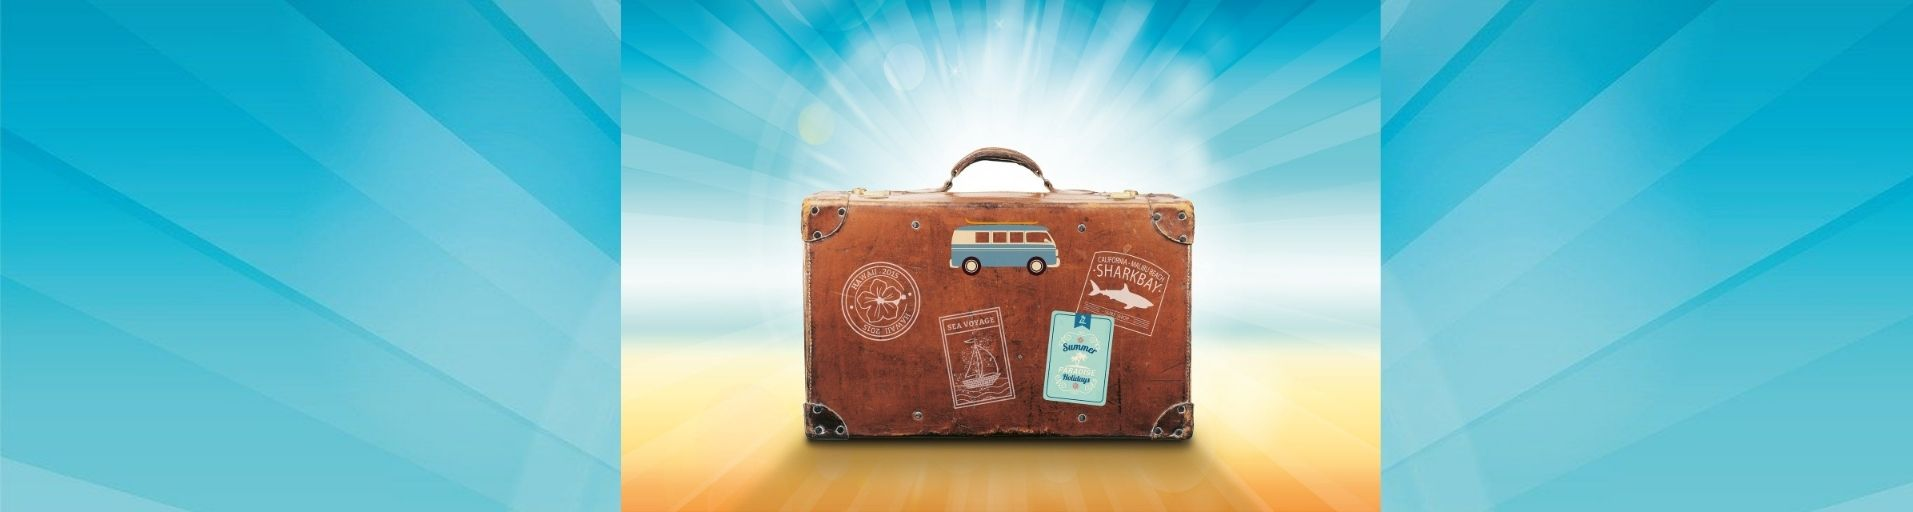 Important Things You Need To Check Before Going On A Trip